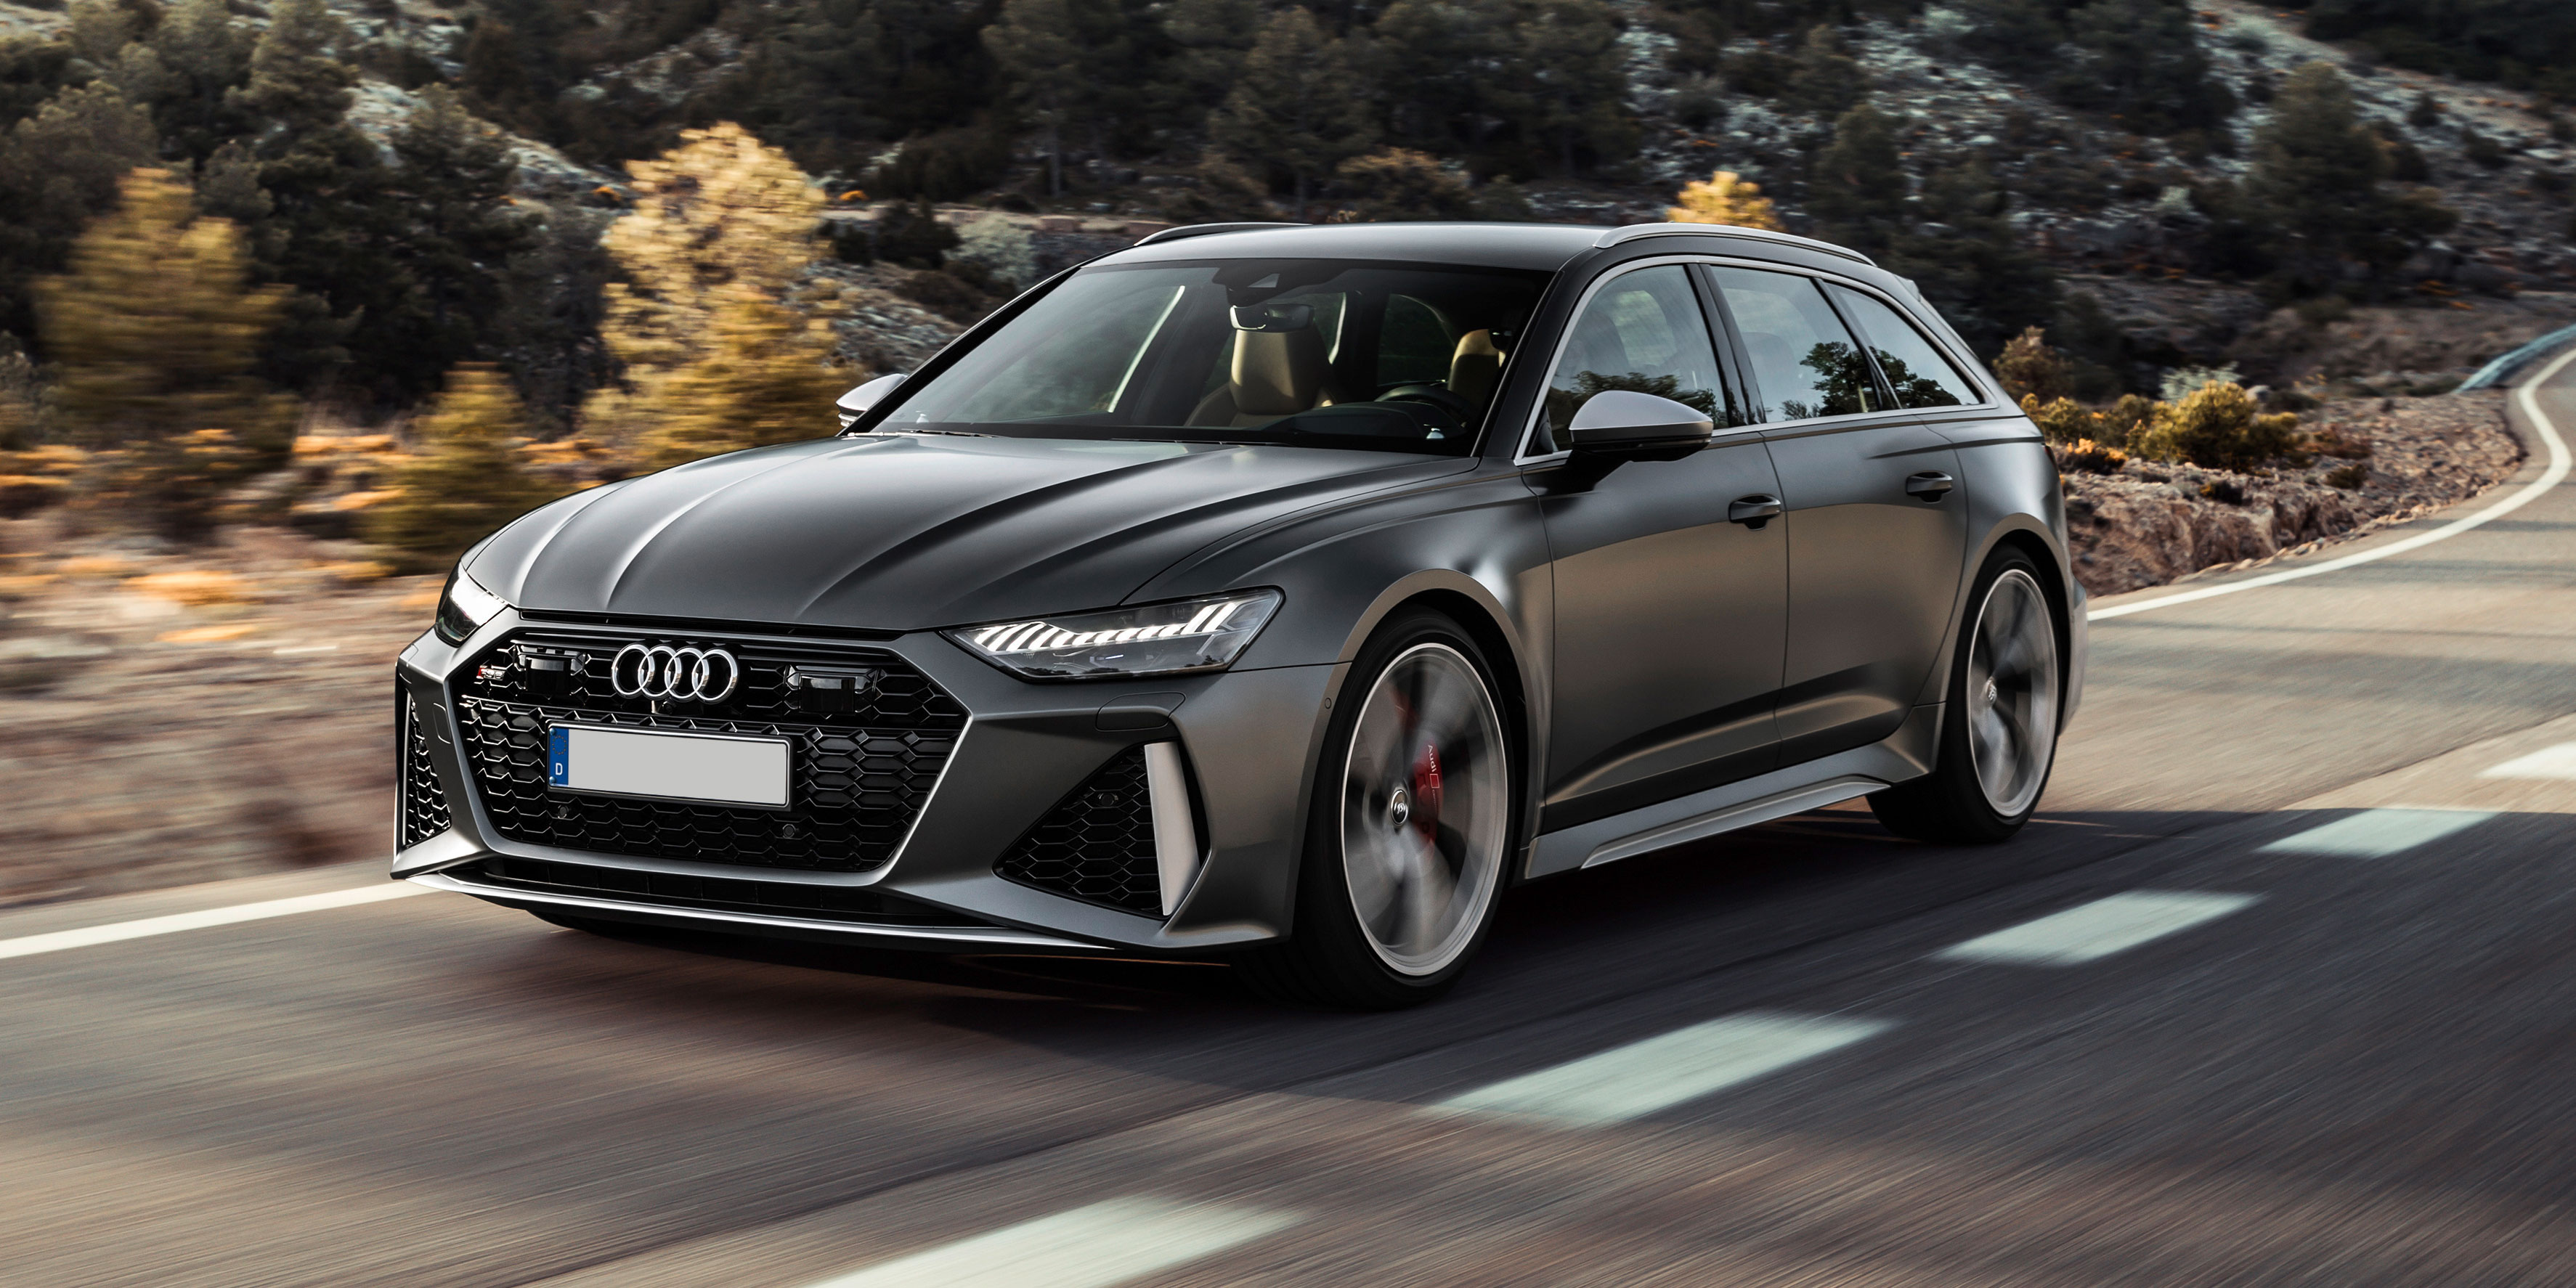 Audi Rs6 Avant Review 2021 Carwow